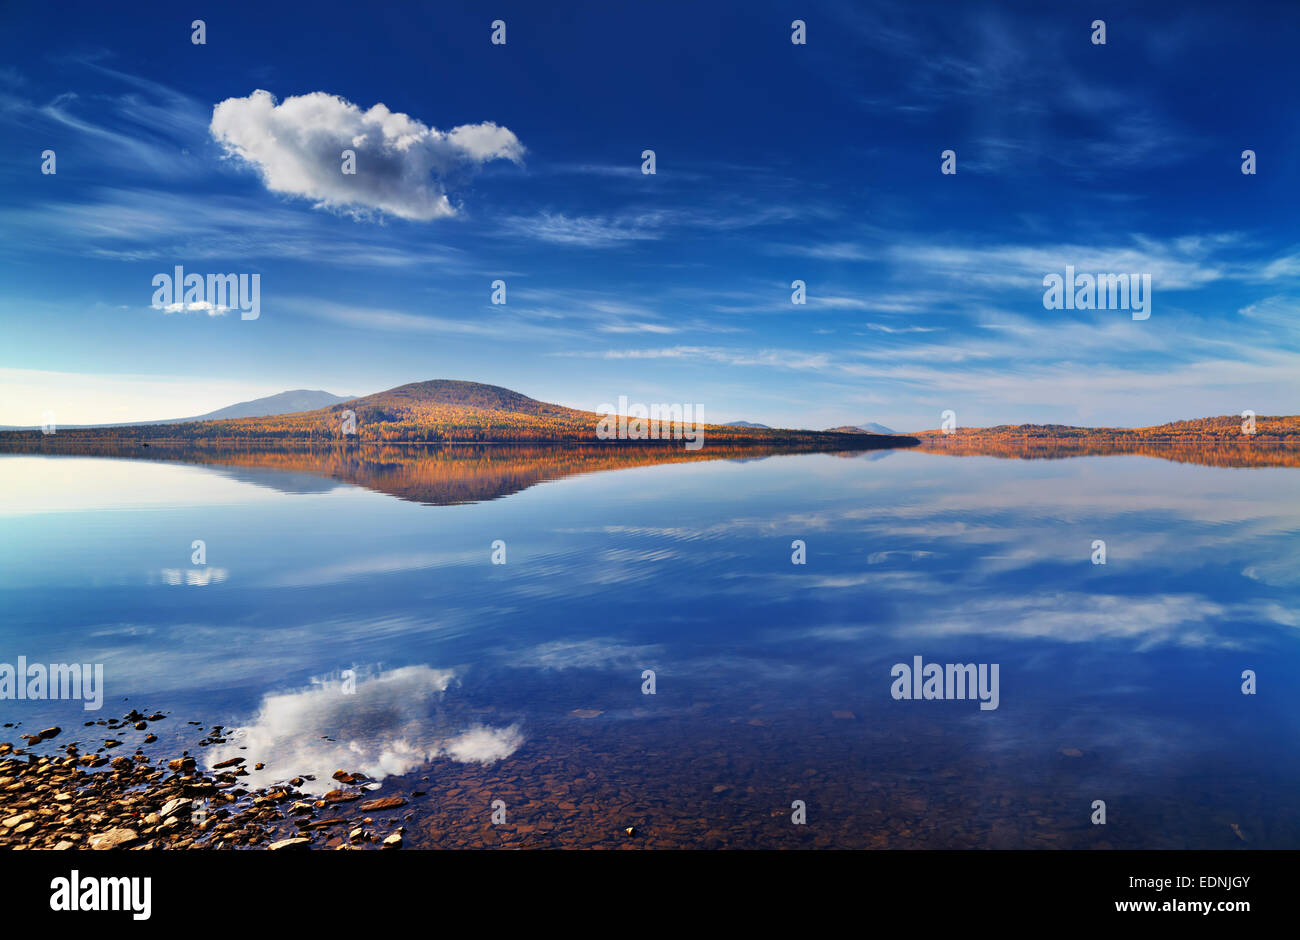 Lake Zuratkul in Ural Mountains, Russia - Stock Image